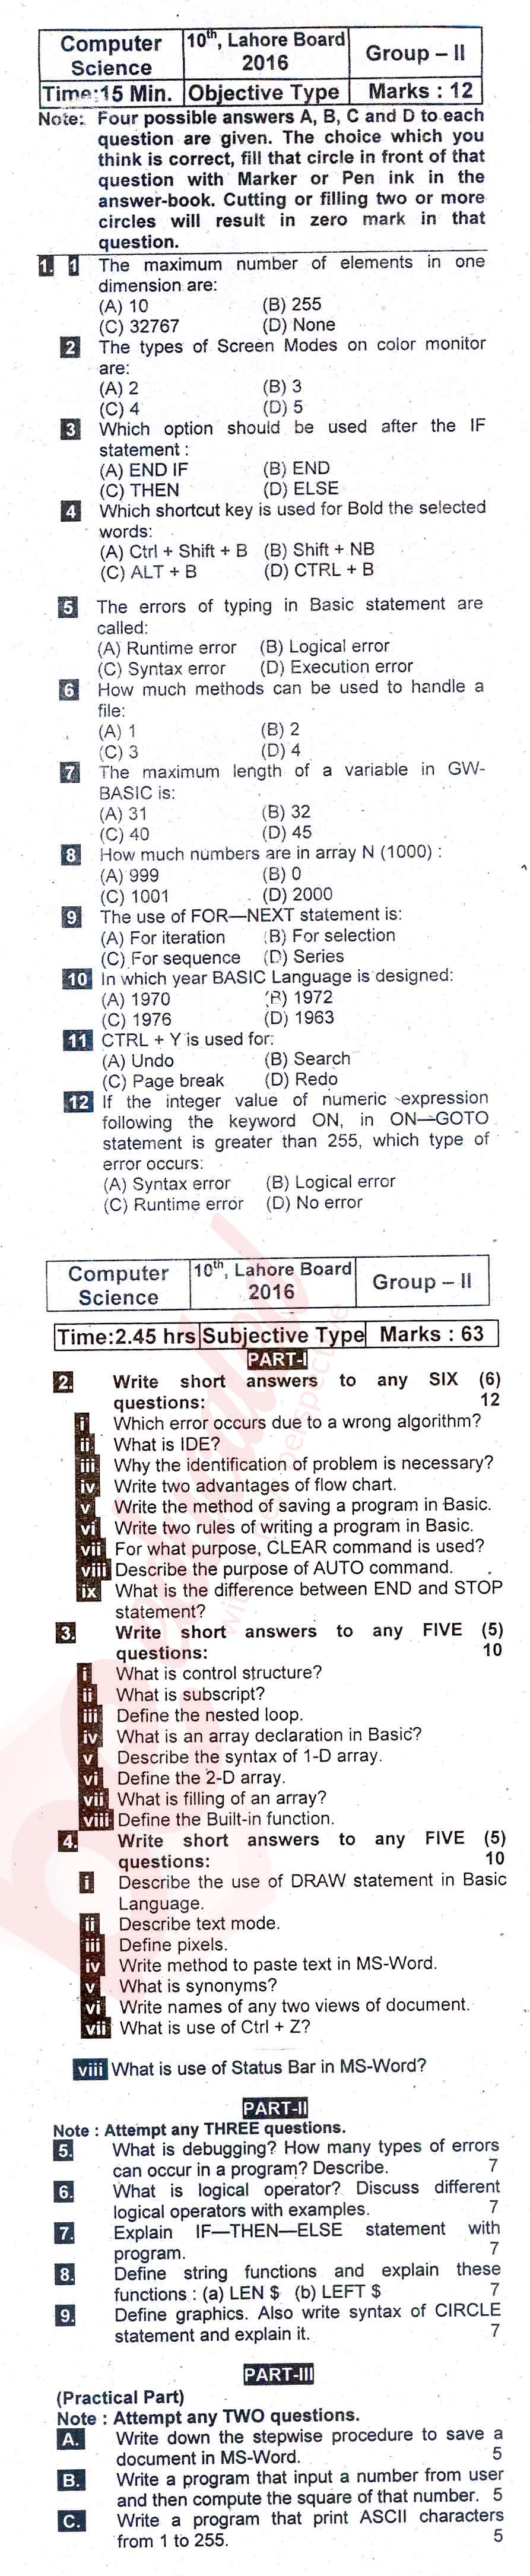 10th-class-computer-science-pastpaper